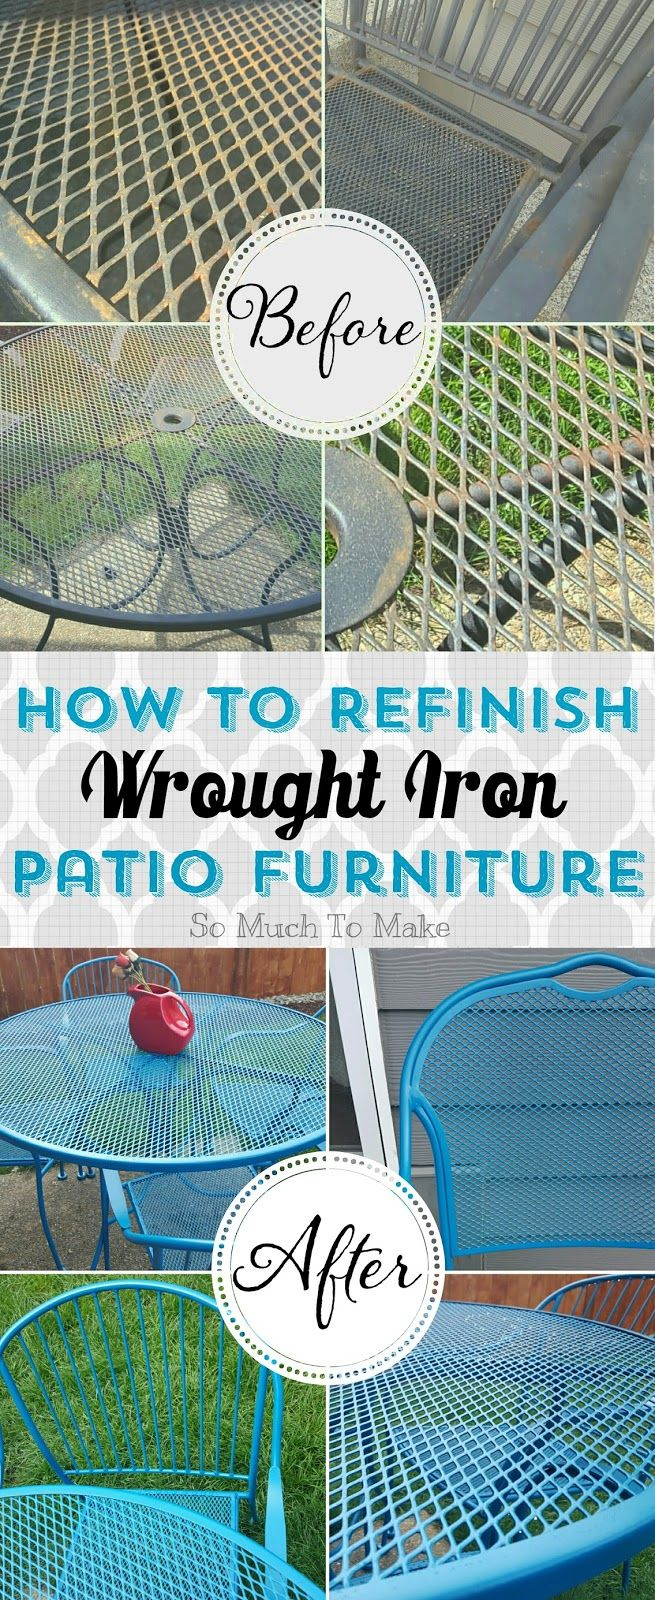 The right way to Refinish Wrought Iron Patio Furnishings